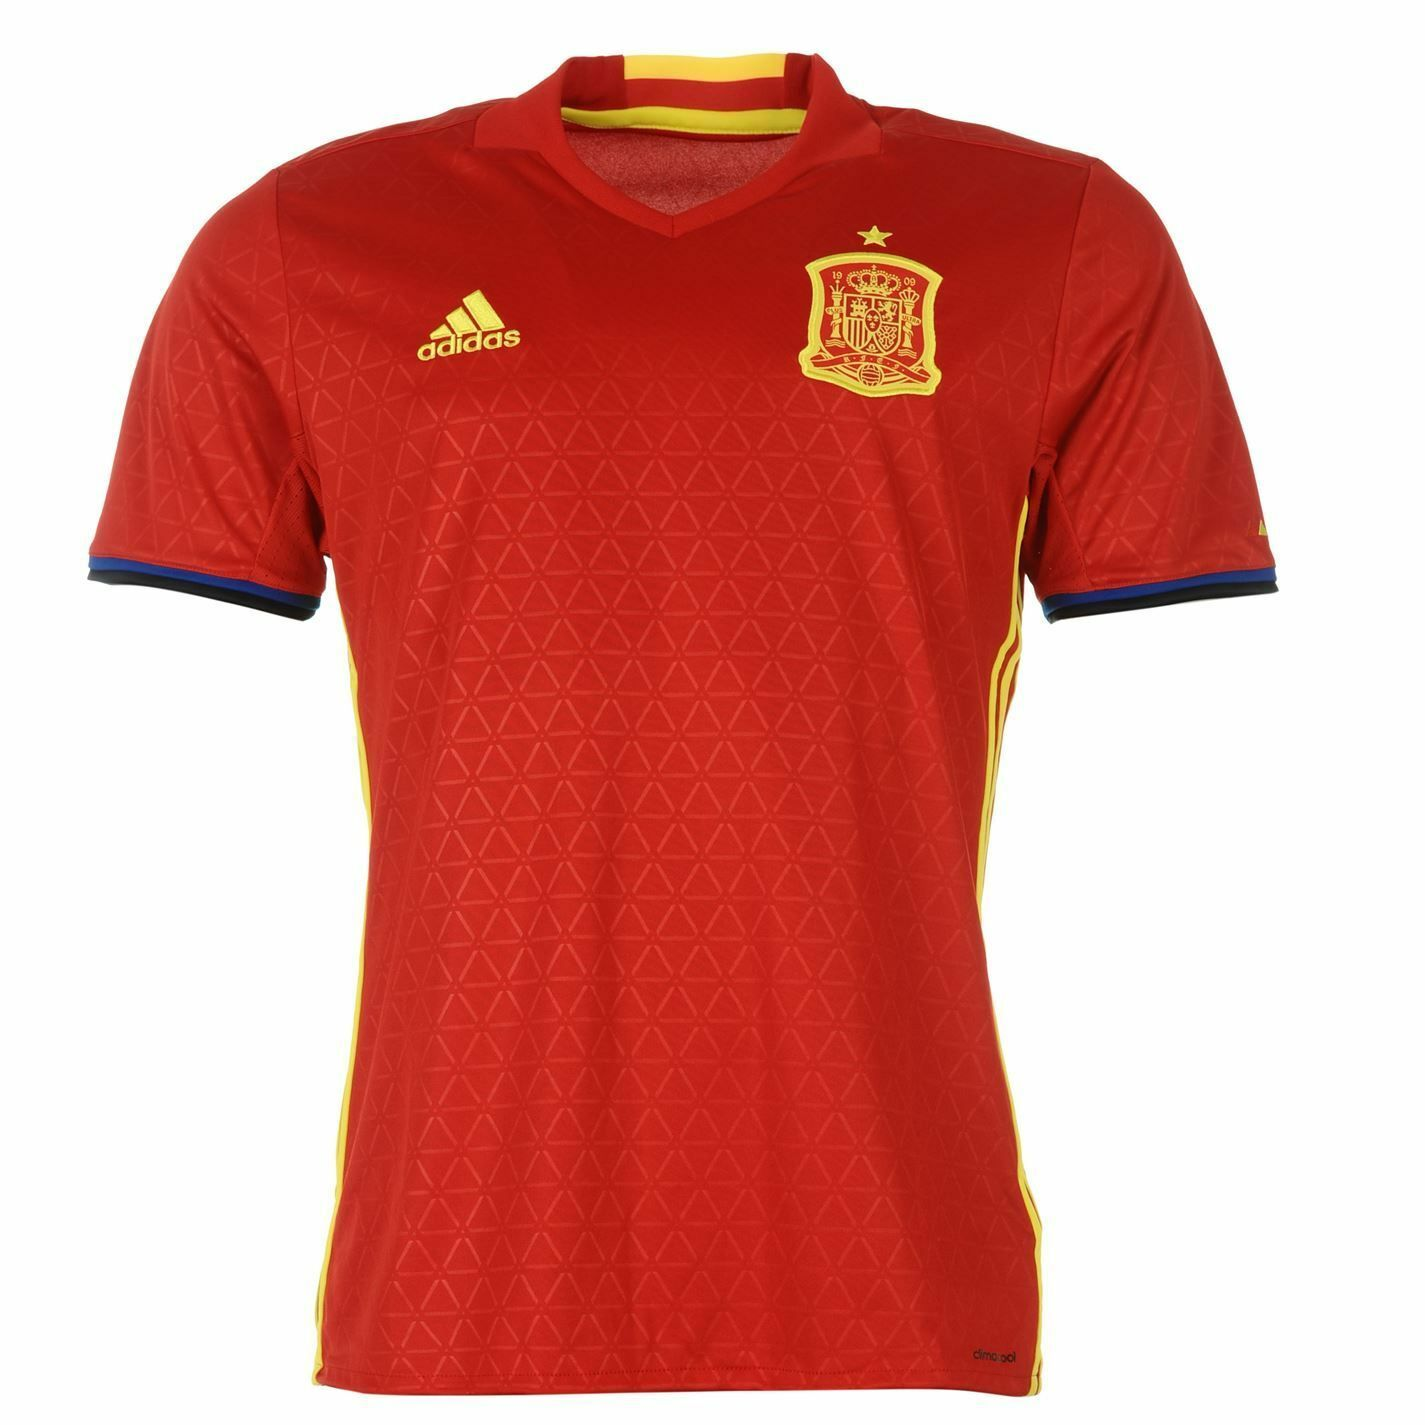 31c511065 adidas 2016 UEFA Euro Spain Soccer Home Jersey XL Ai4411 for sale online |  eBay